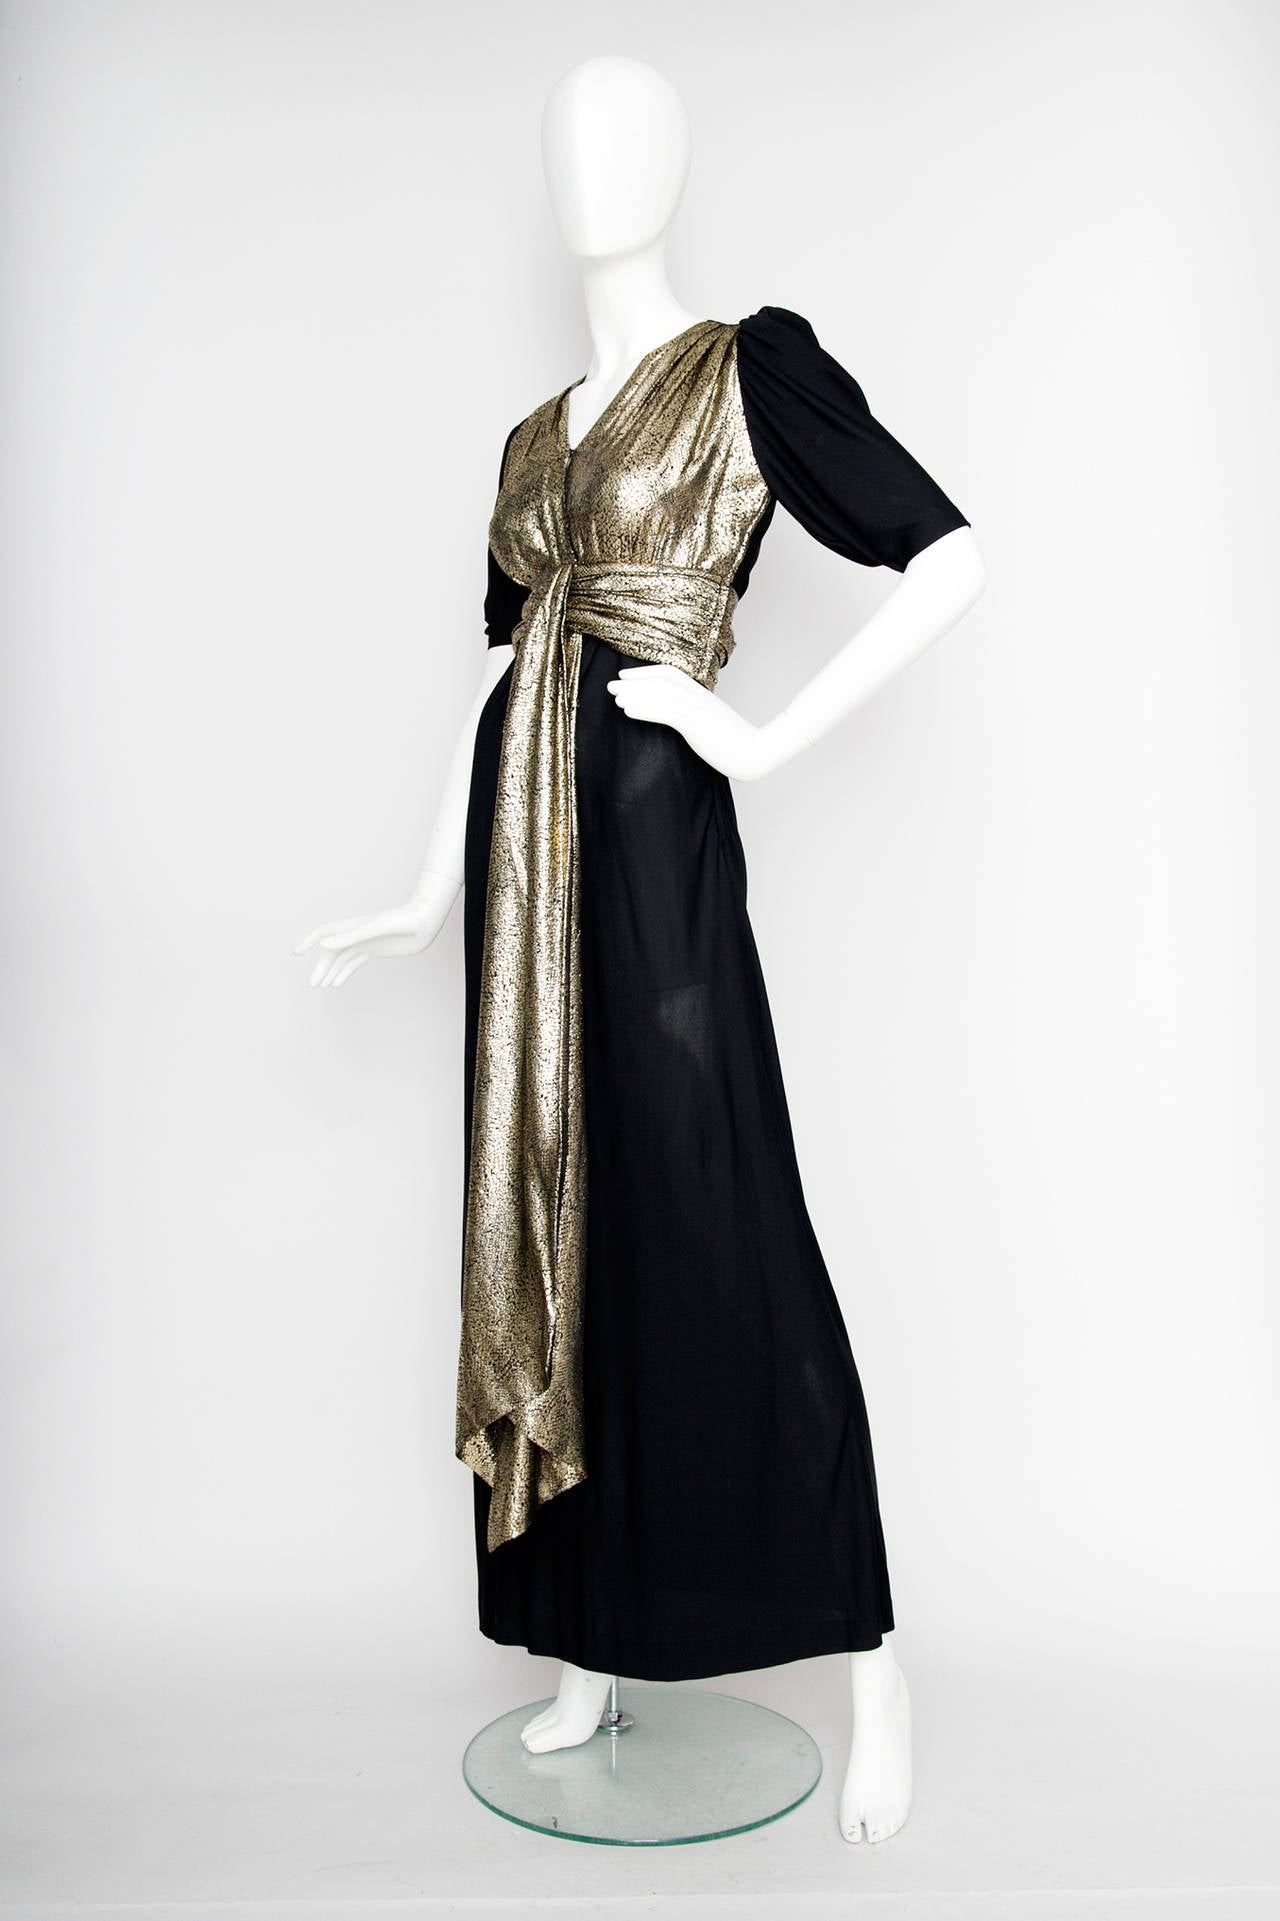 Yves Saint Laurent Black Silk and Gold Lamé Dress, 1970s  In Good Condition For Sale In Copenhagen, DK